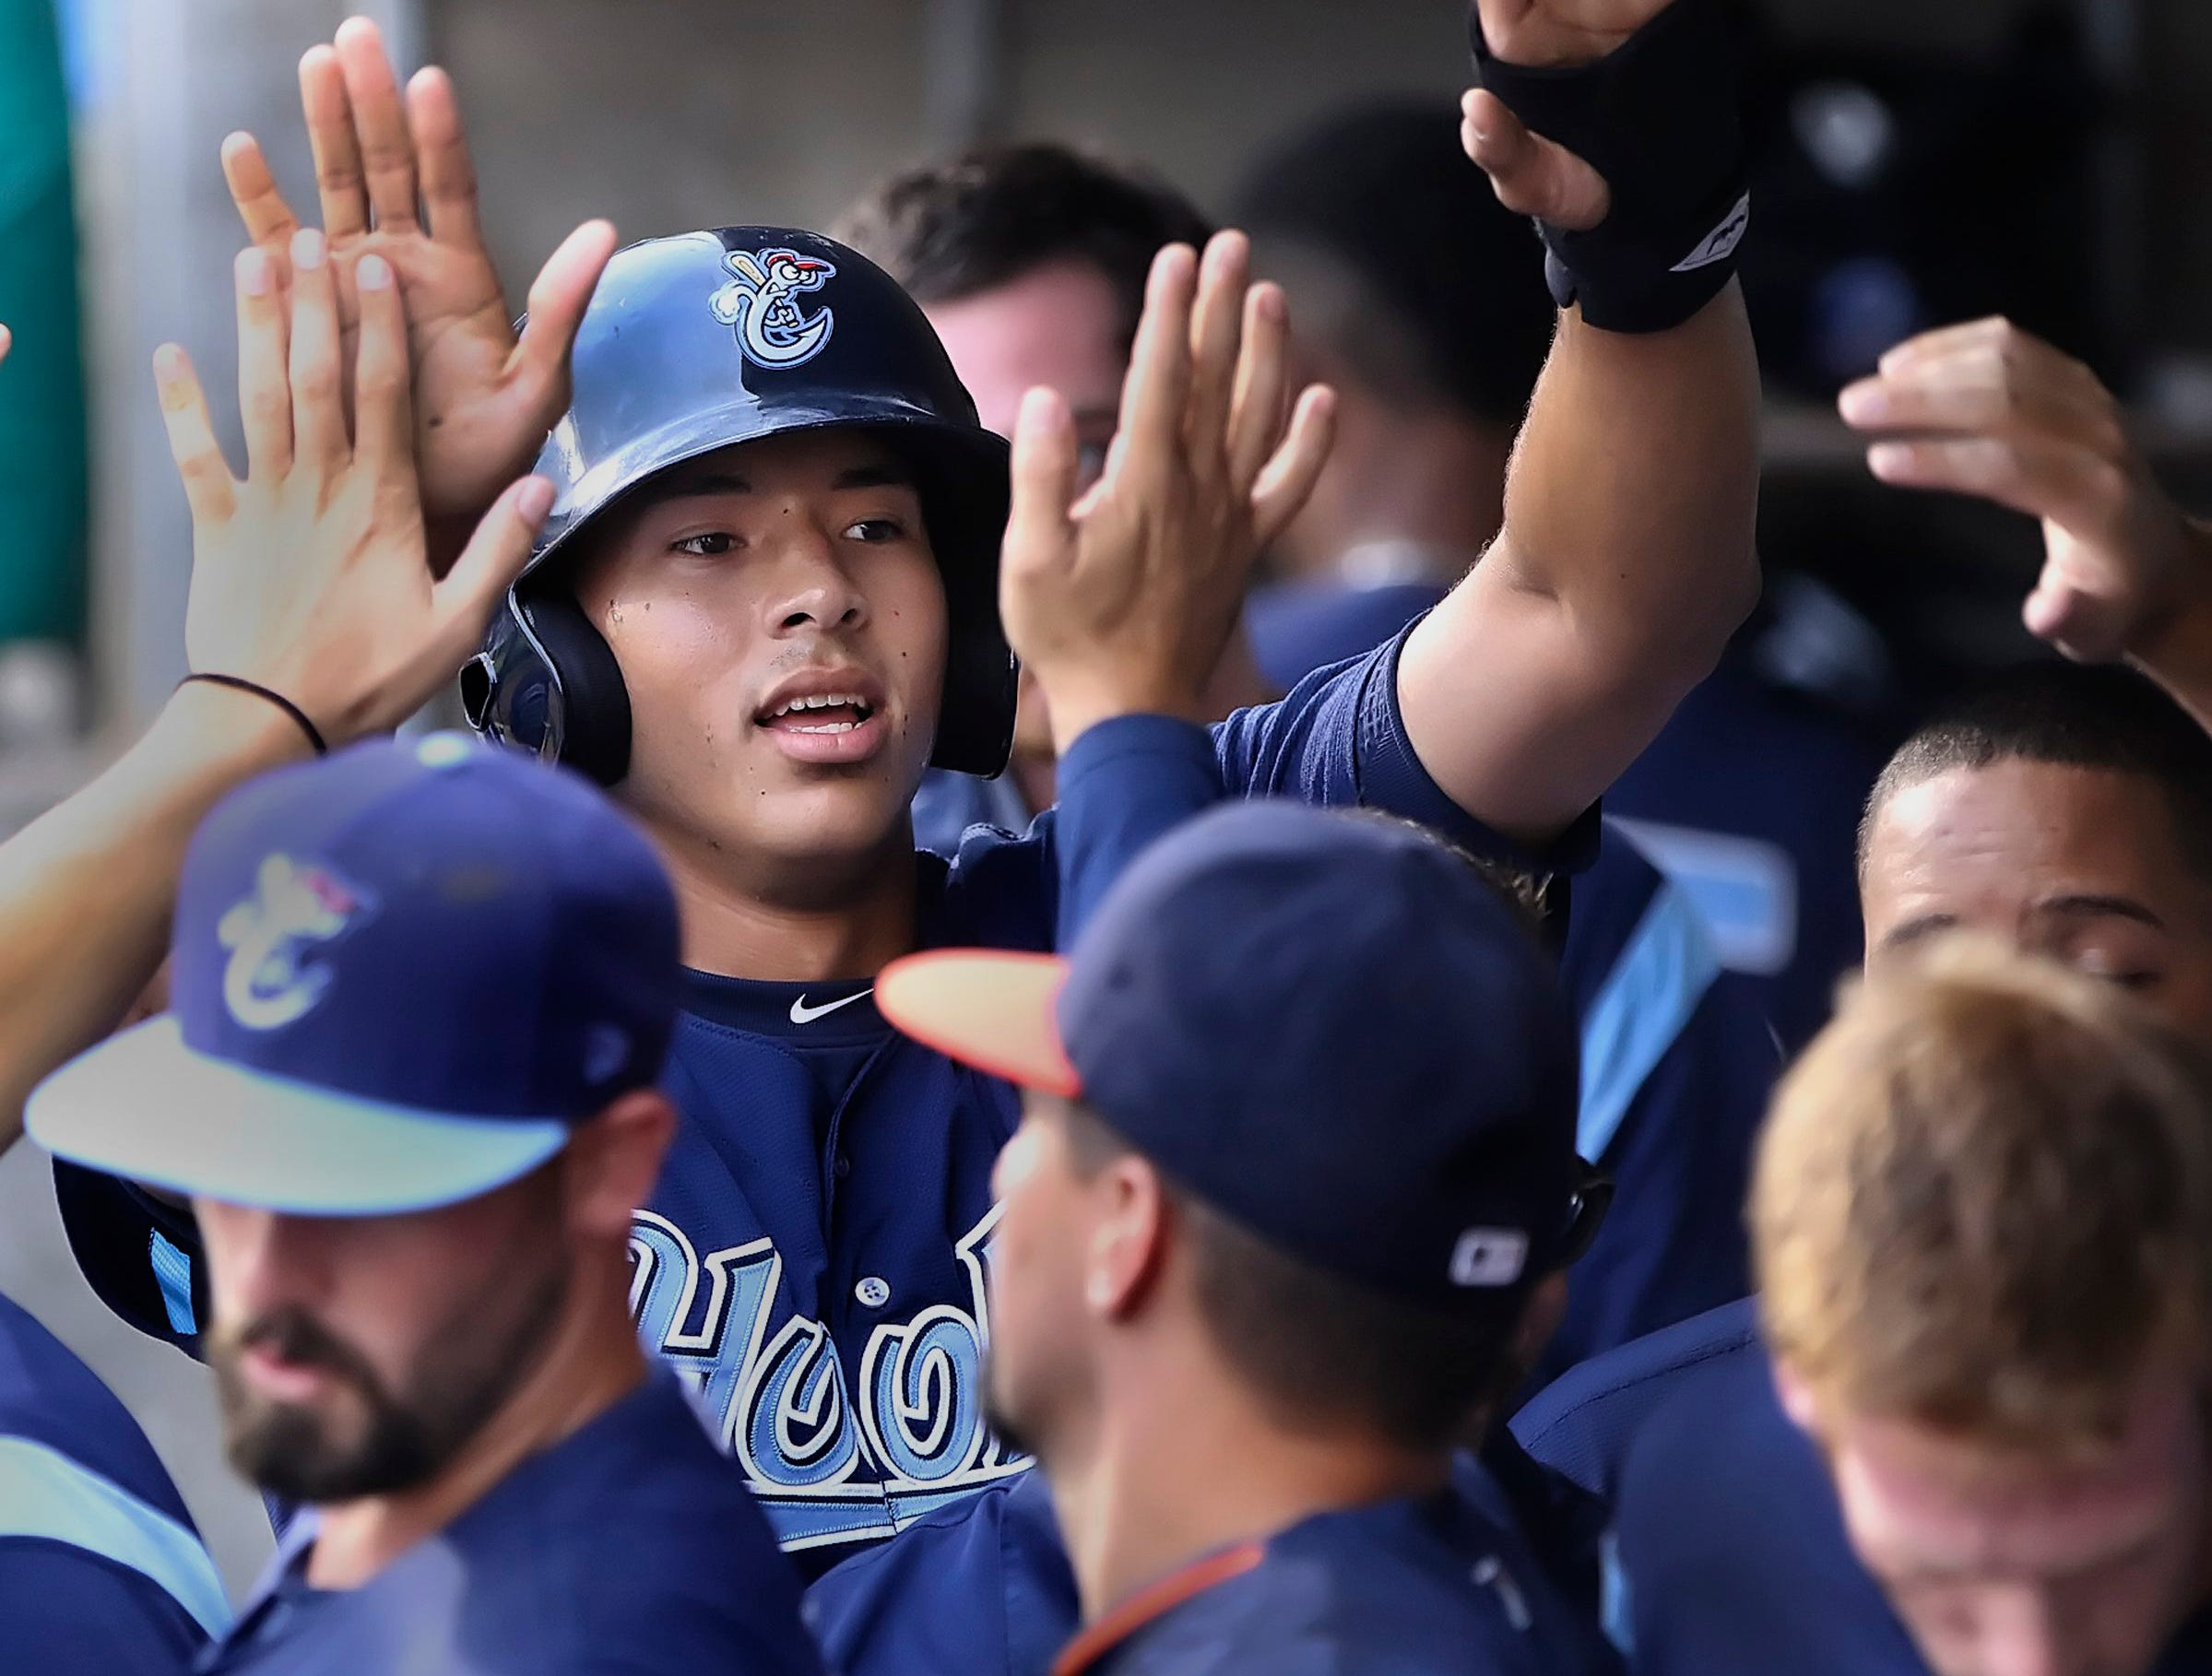 GEORGE TULEY/SPECIAL TO THE CALLER-TIMES Carlos Correa collects high fives in the dugout after scoring the Hooiks second run in the first inning for a 2-1 lead after his RBI double tied the game at Whataburger Field in Corpus Christi, Friday, April 17, 2015.